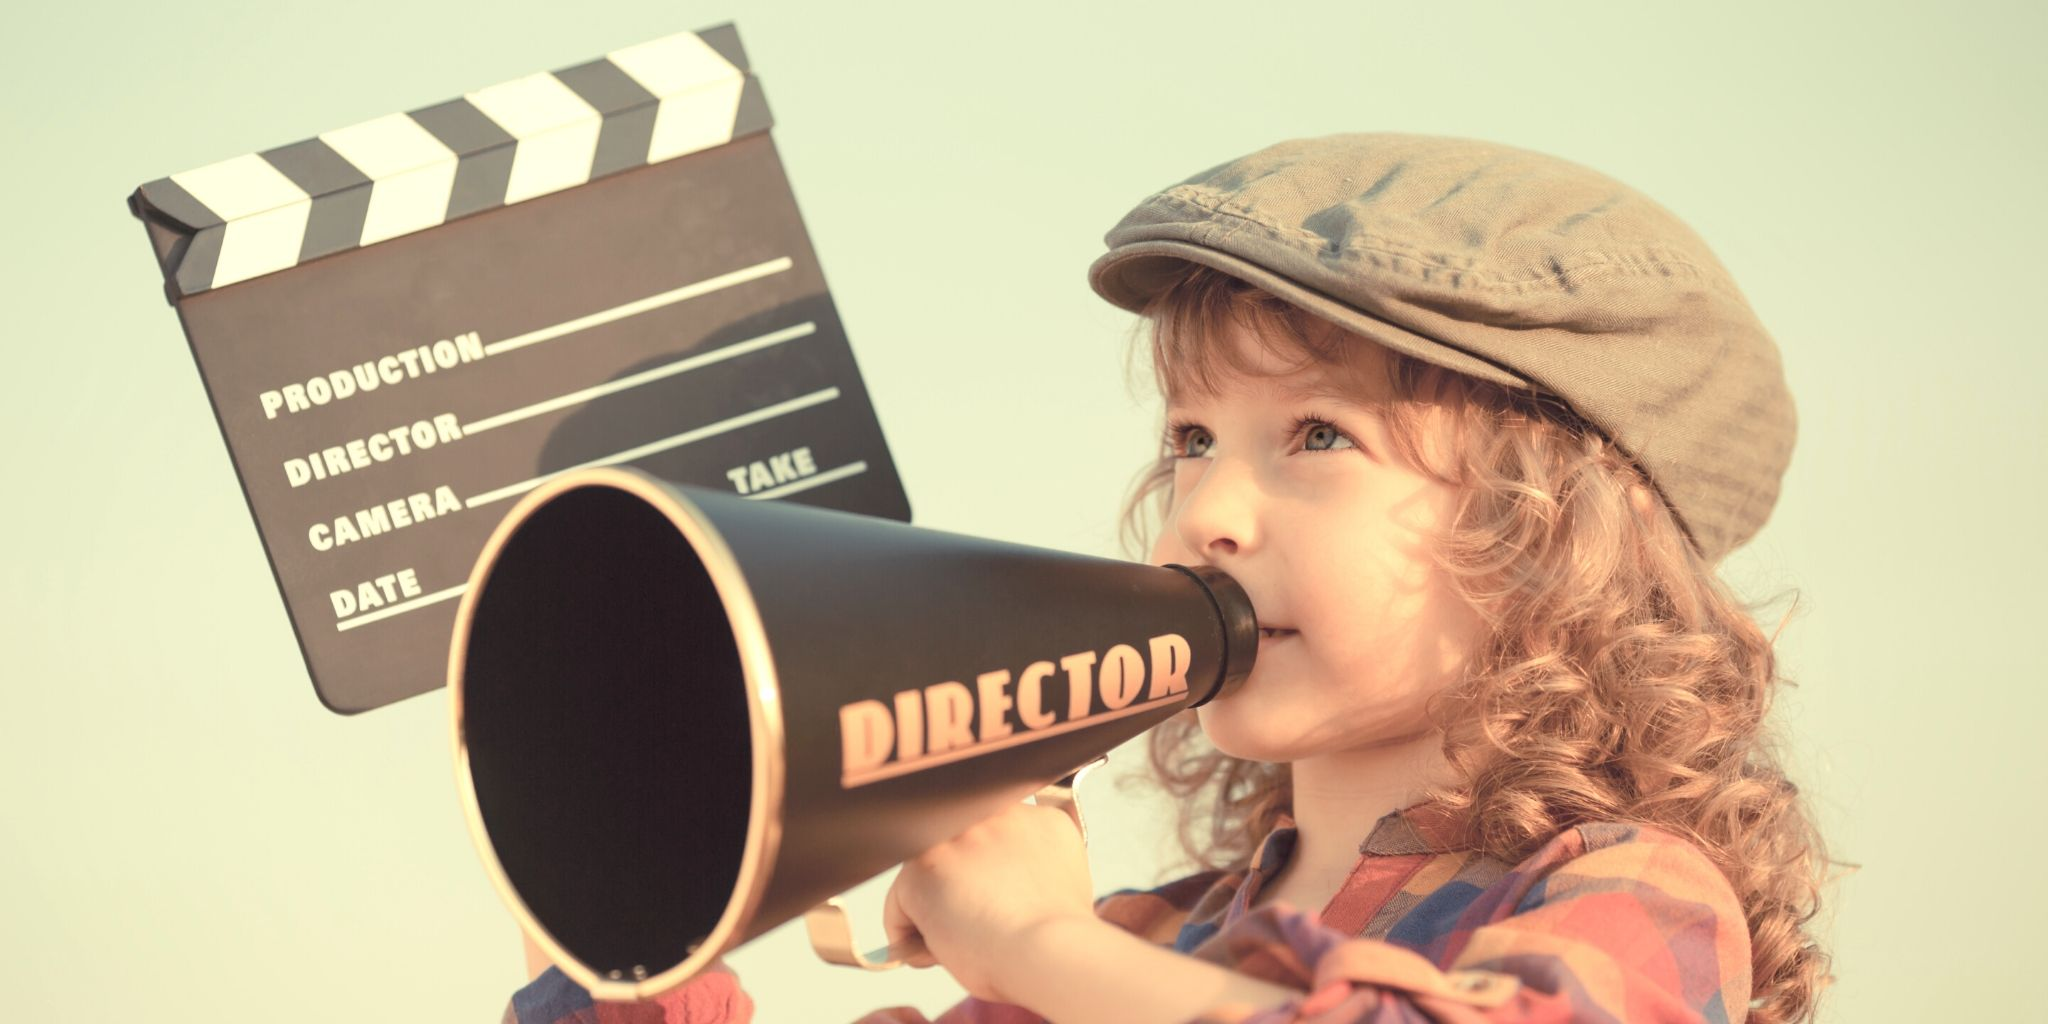 What makes movies good or bad for your child's development